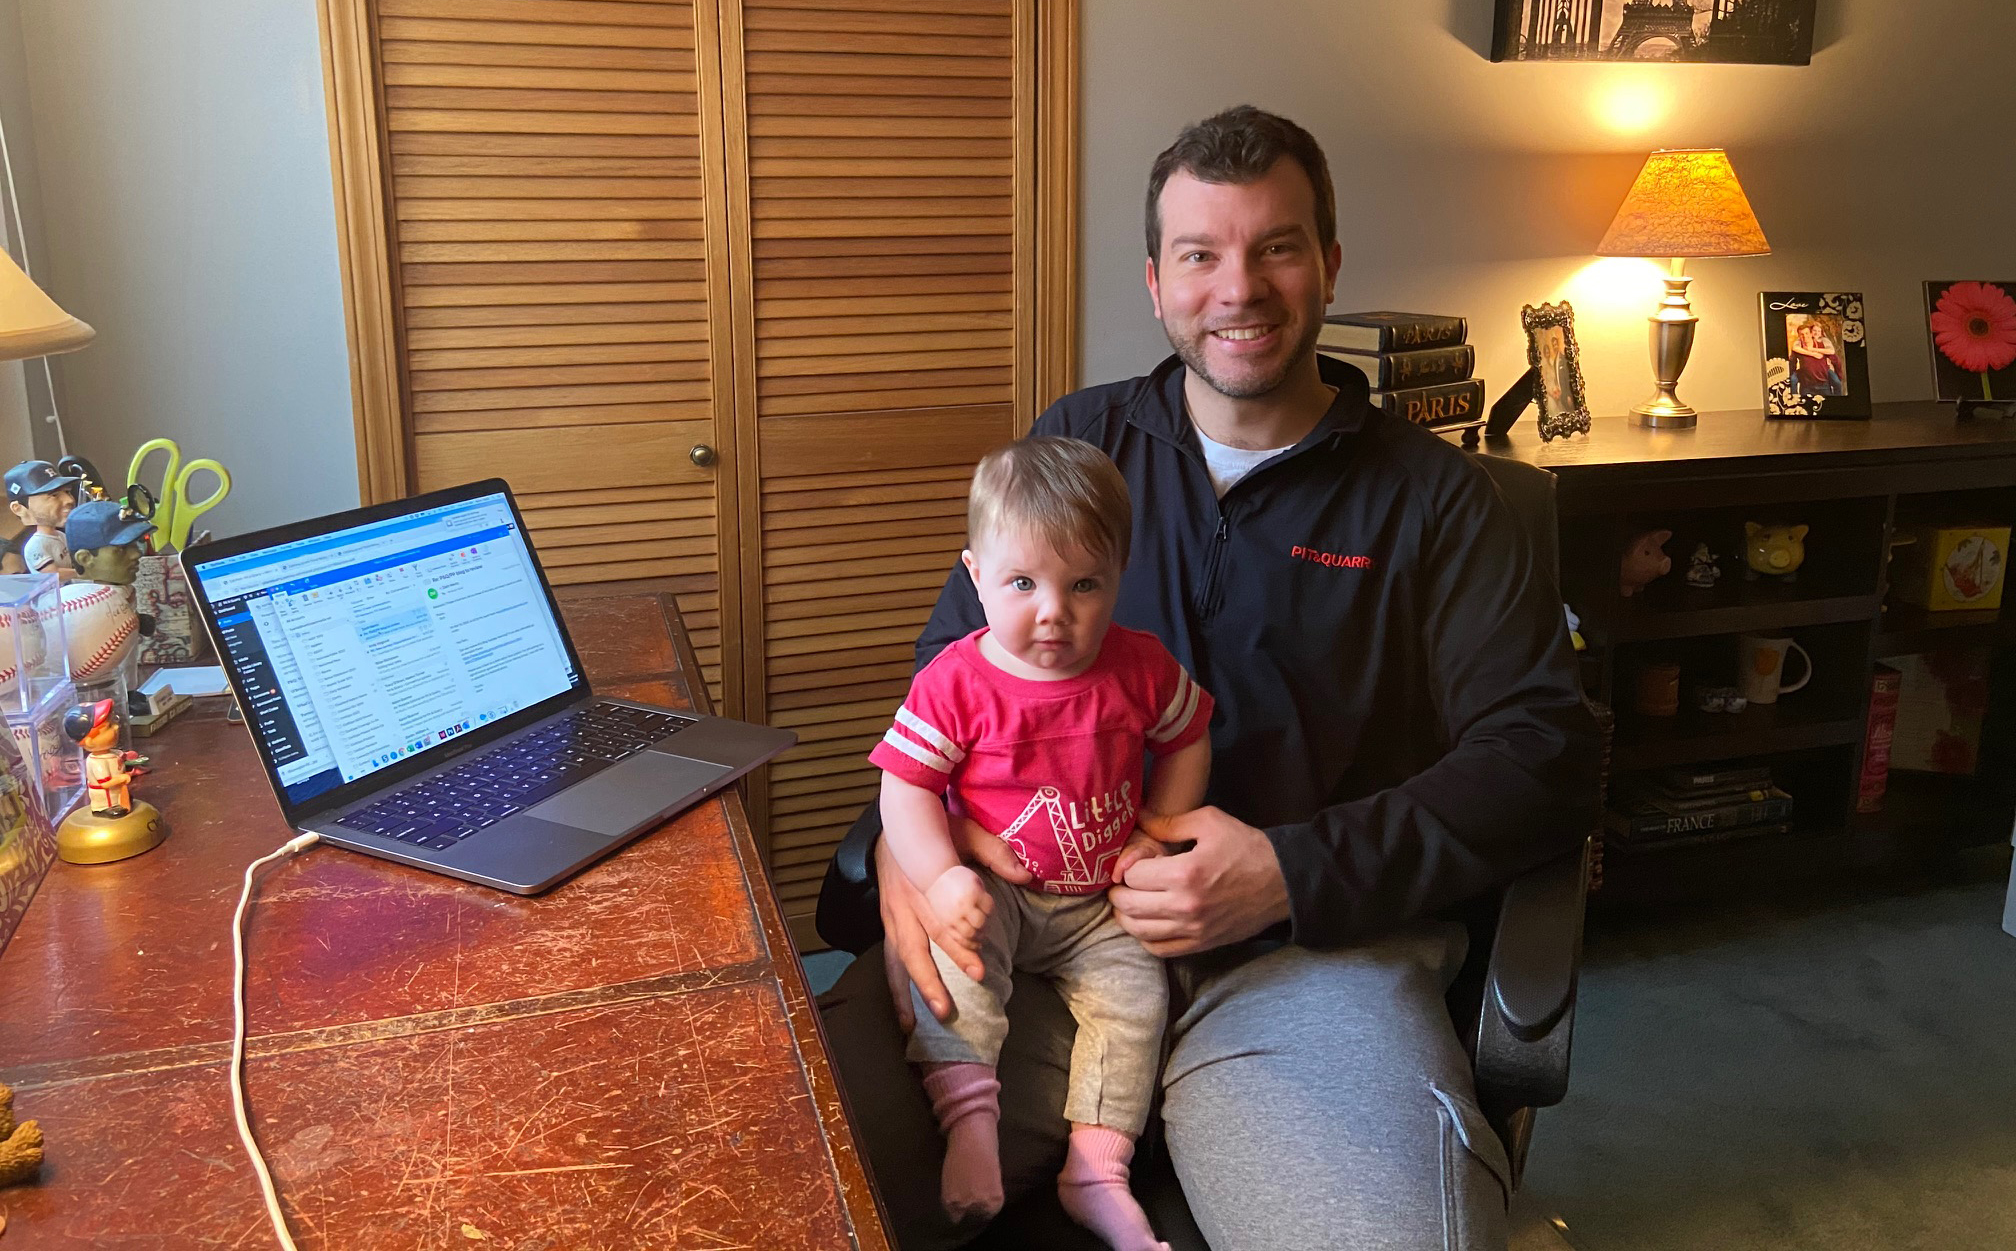 P&Q Editor-in-Chief Kevin Yanik and his daughter Amelia working from home during the coronavirus pandemic. Photo: P&Q Staff